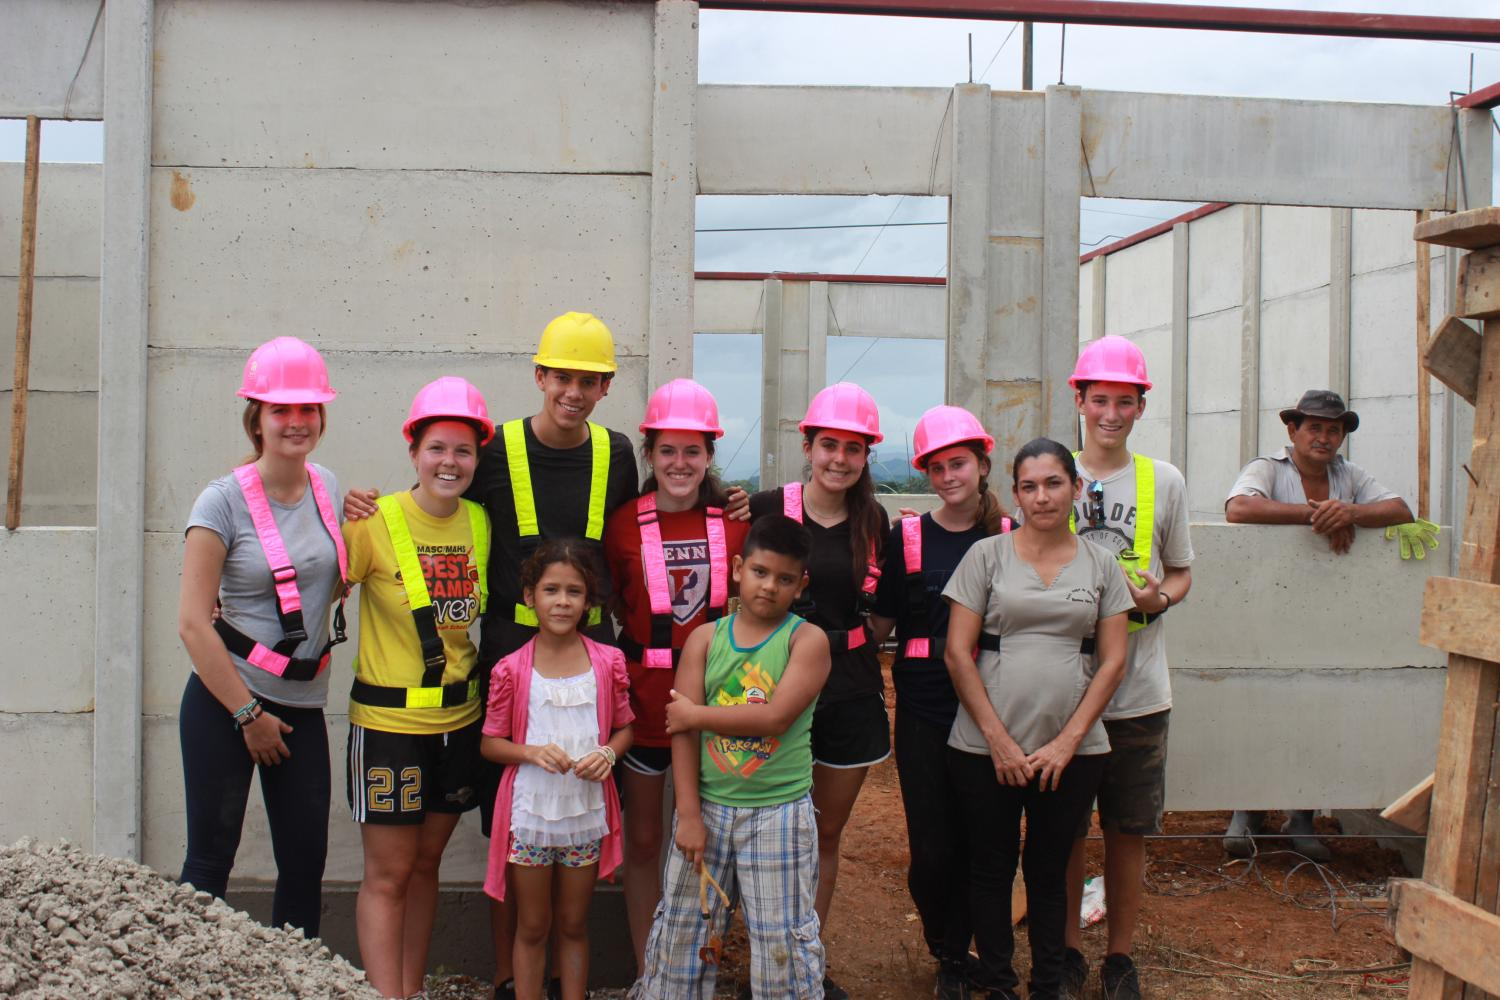 A+photo+of+Katherine+Parent%27s+group+at+the+Habitat+for+Humanity+build+site.%0APhoto+from+Katherine+Parent.%0A